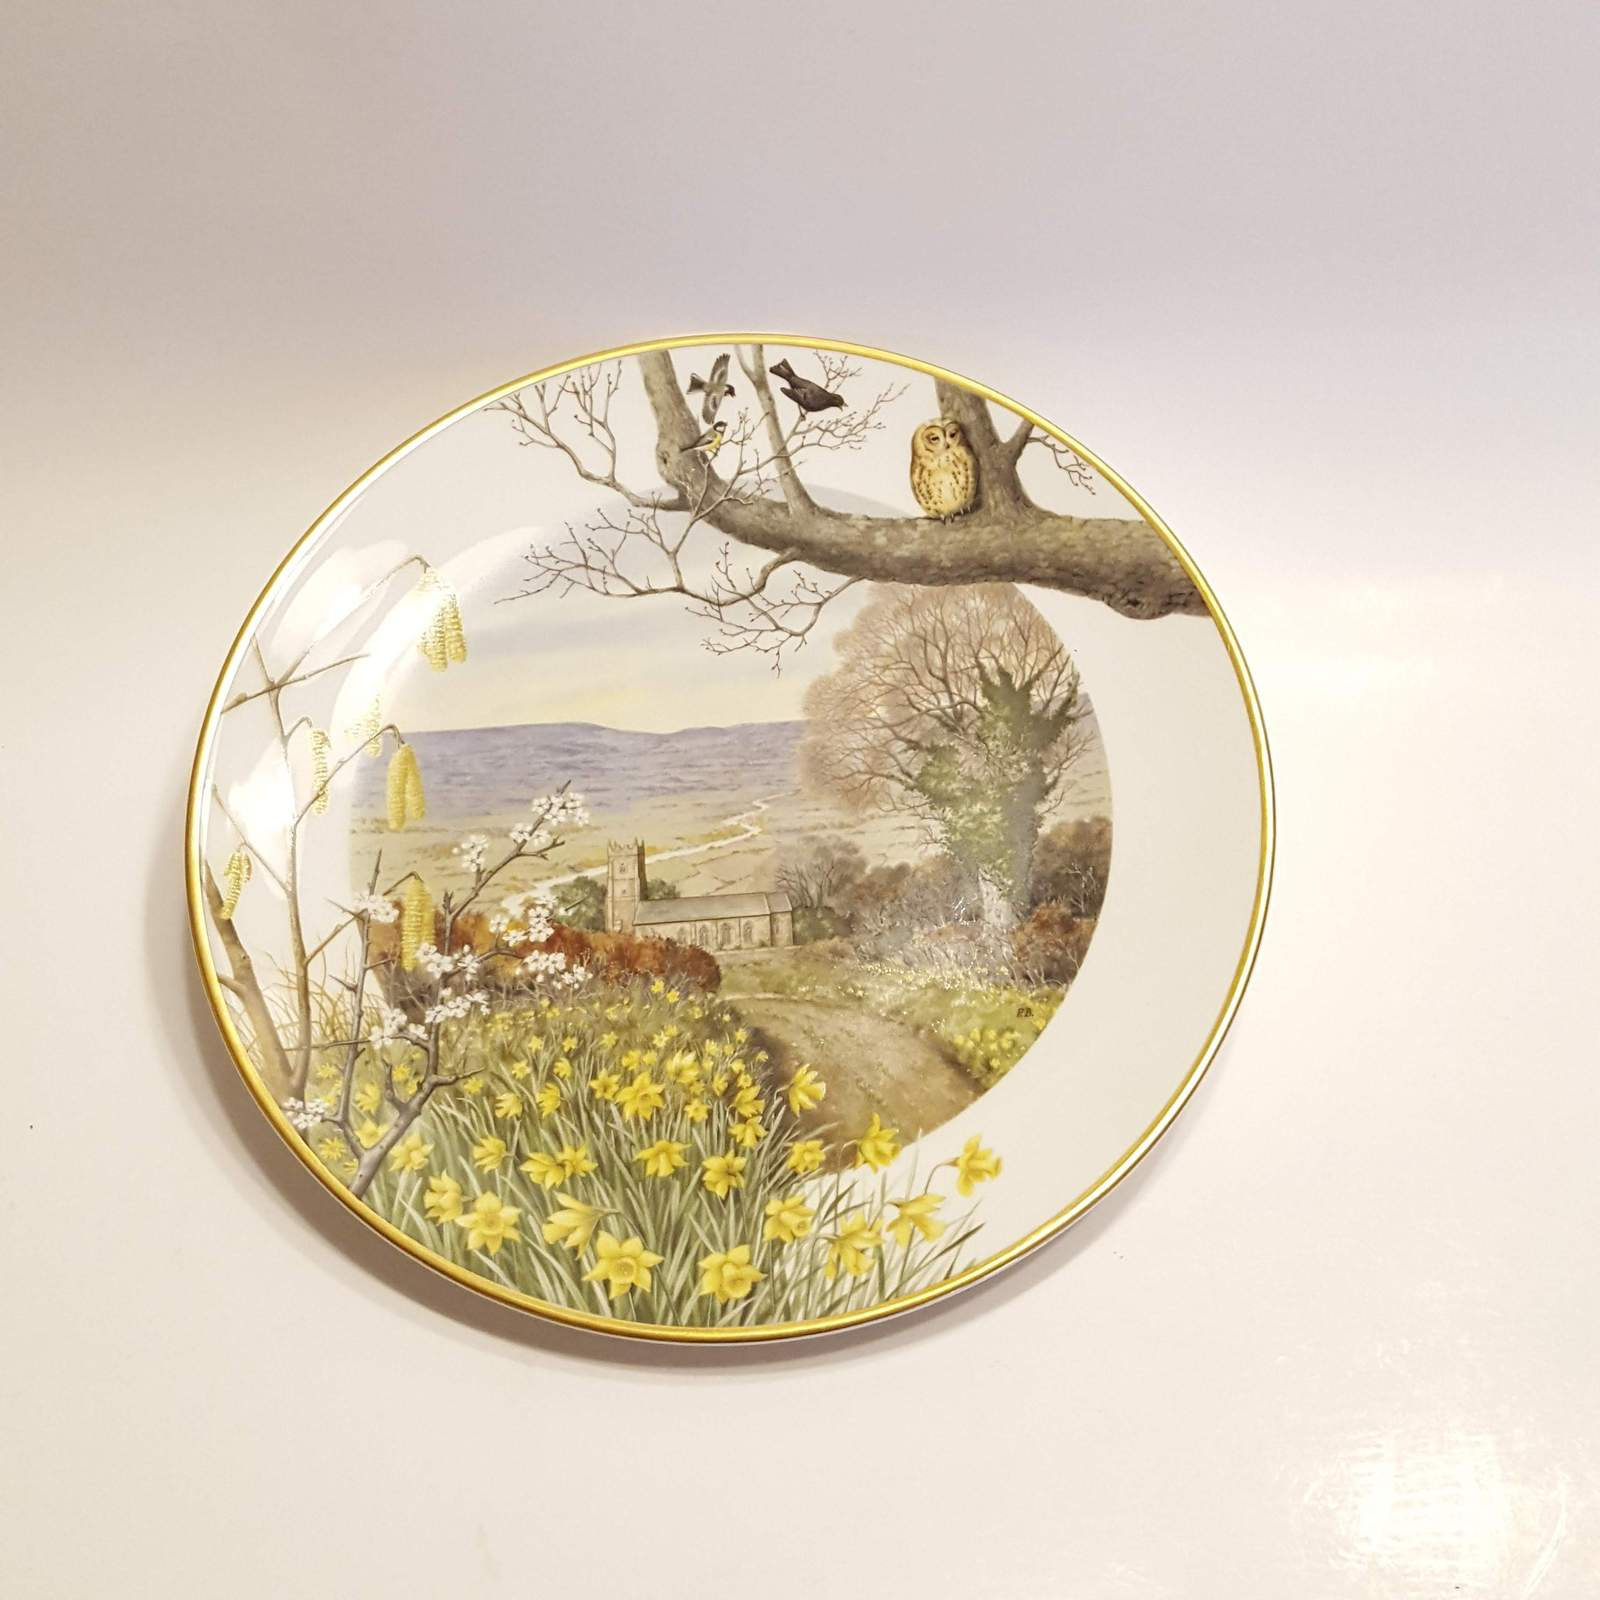 Primary image for Franklin Porcelain Plate A country church in March @1979 by Peter Banett.